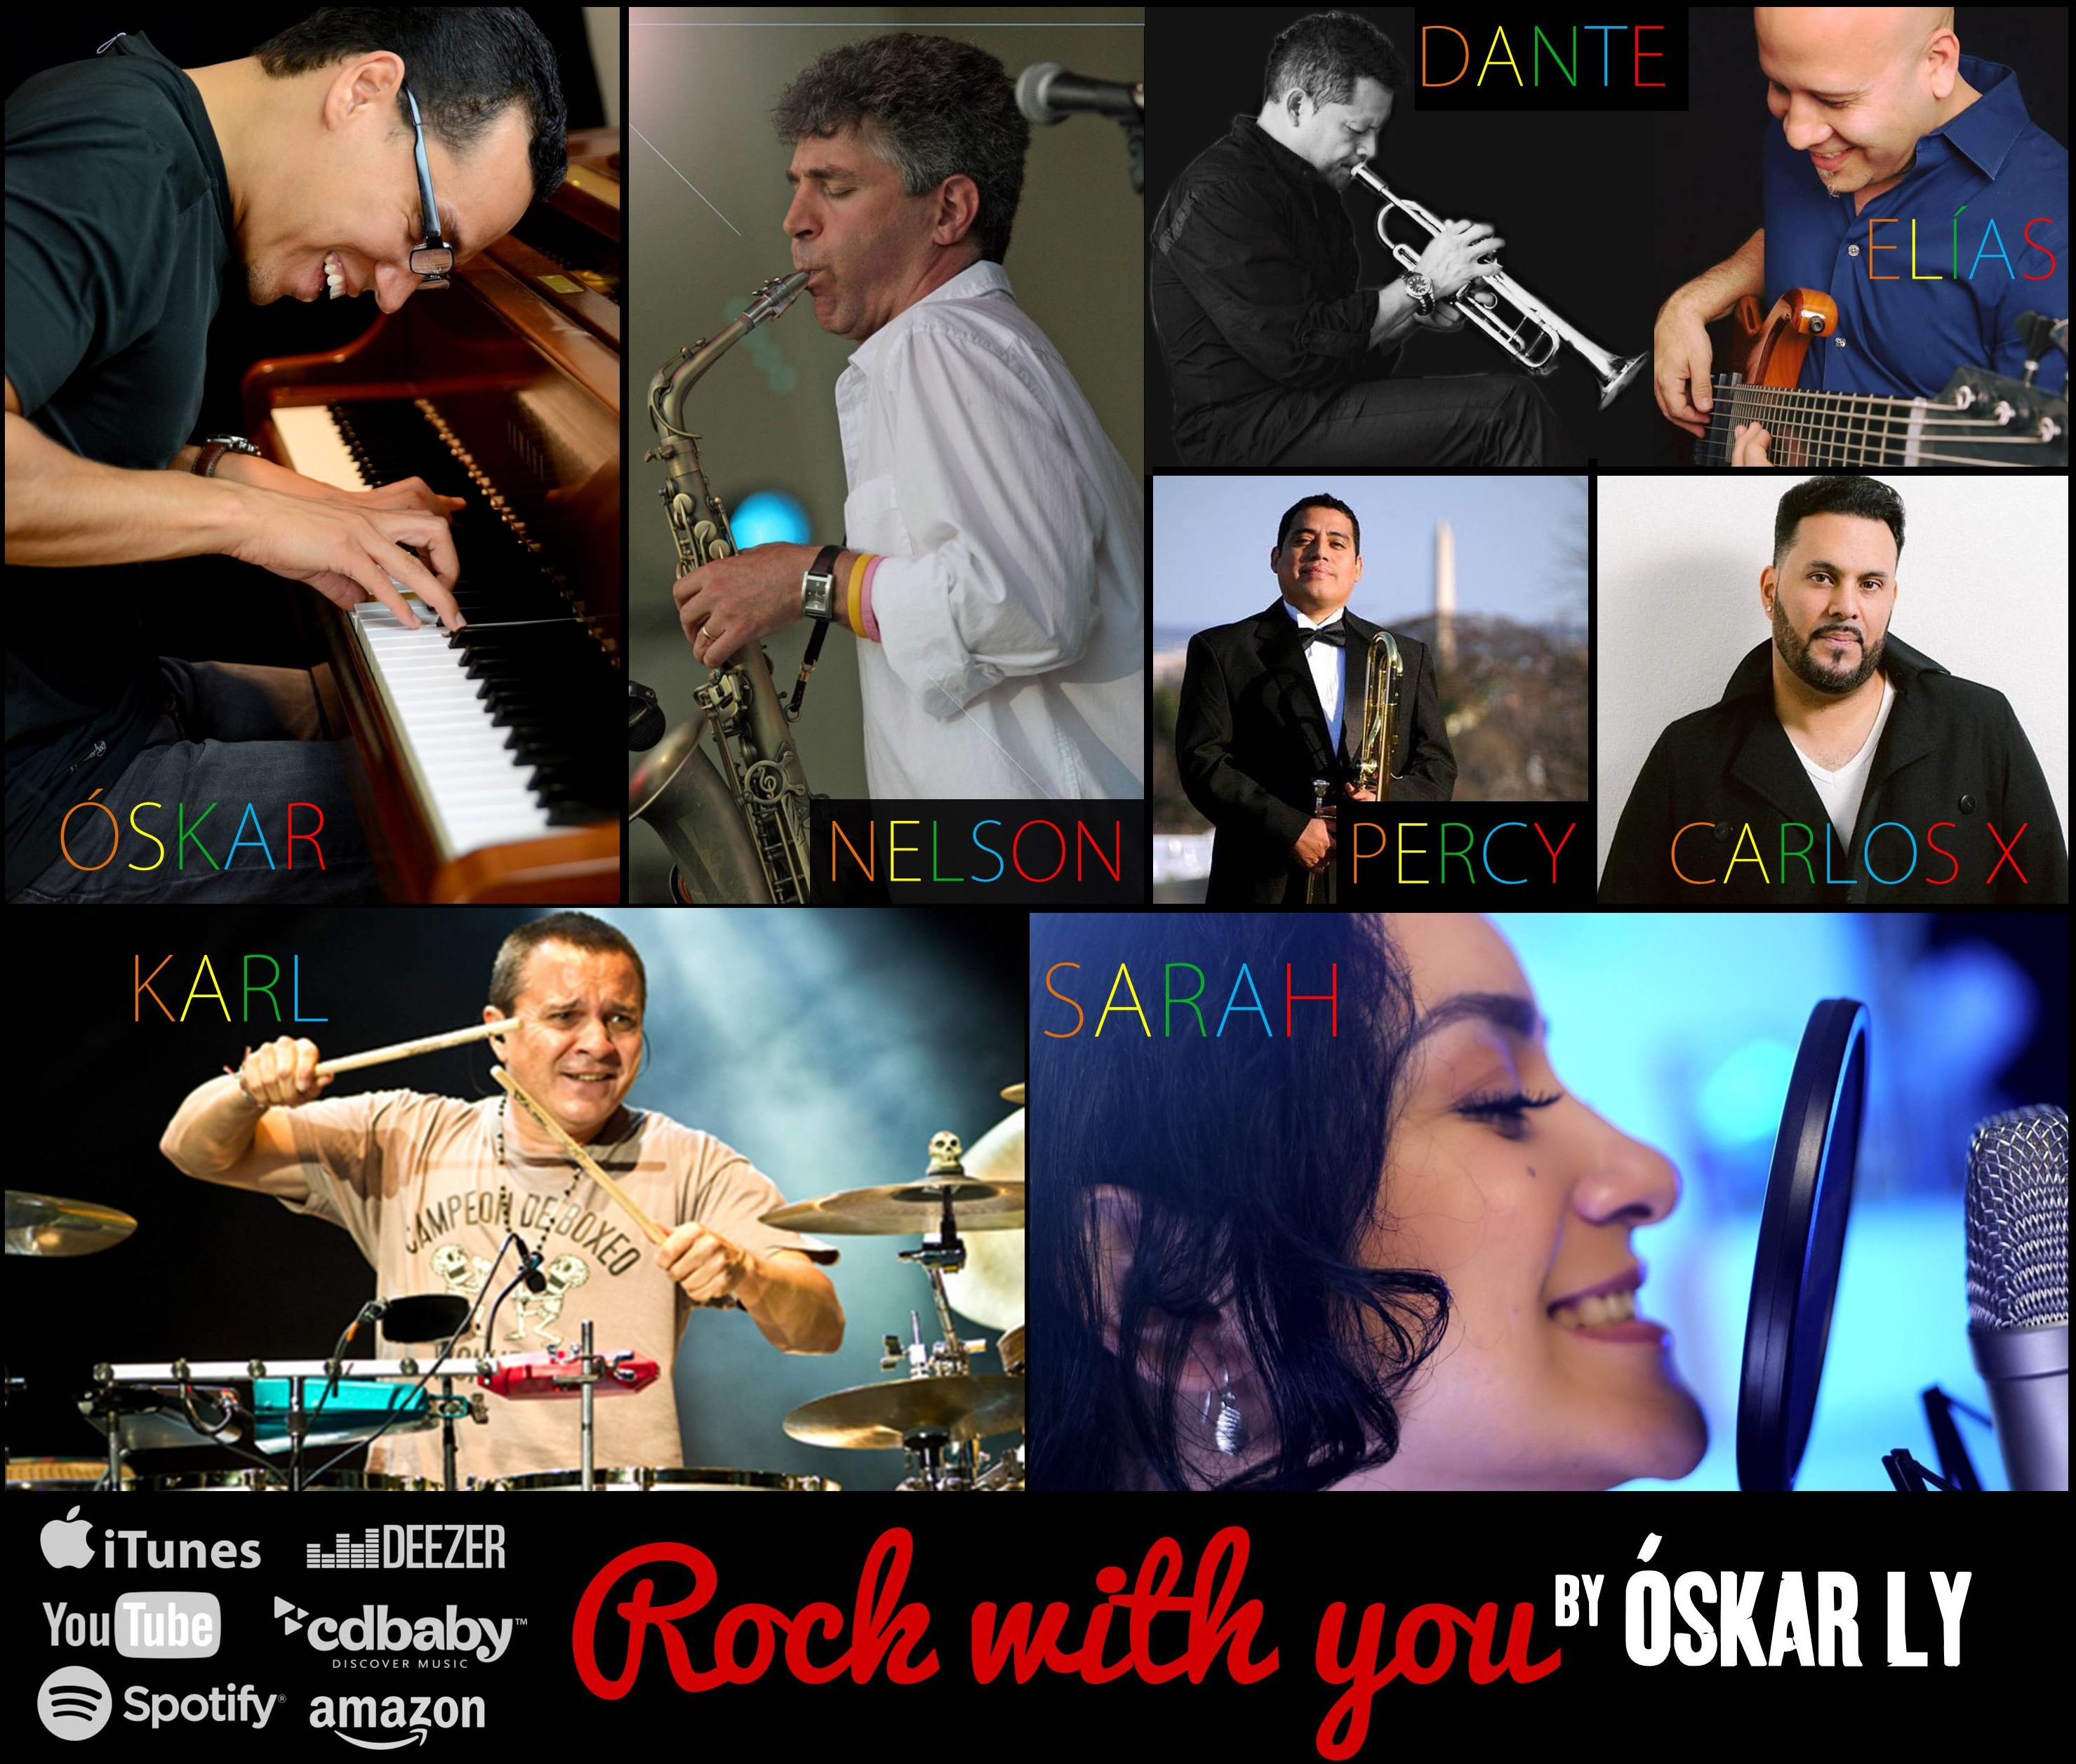 6. Musicians collage 2